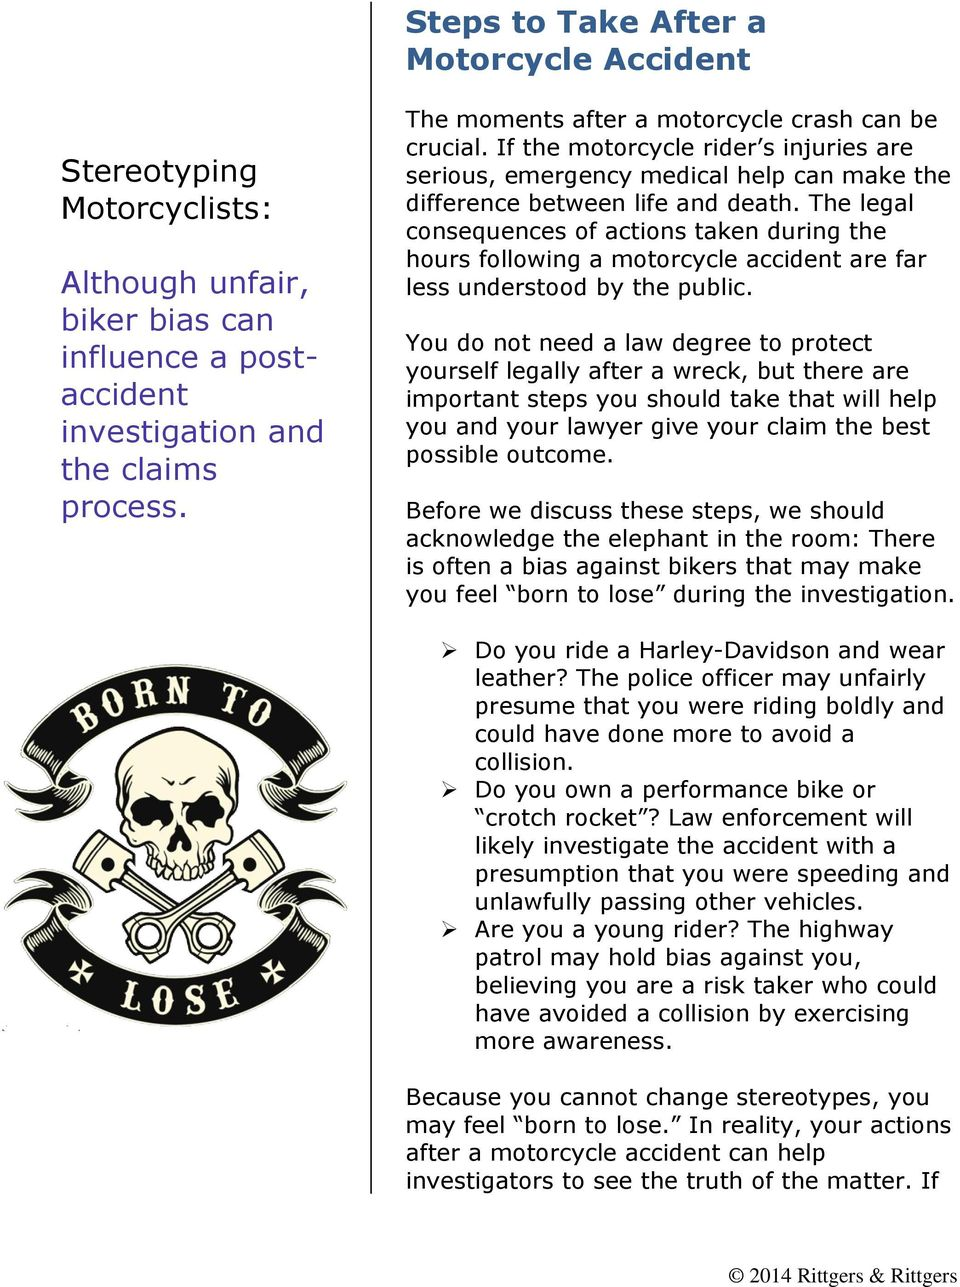 The legal consequences of actions taken during the hours following a motorcycle accident are far less understood by the public.